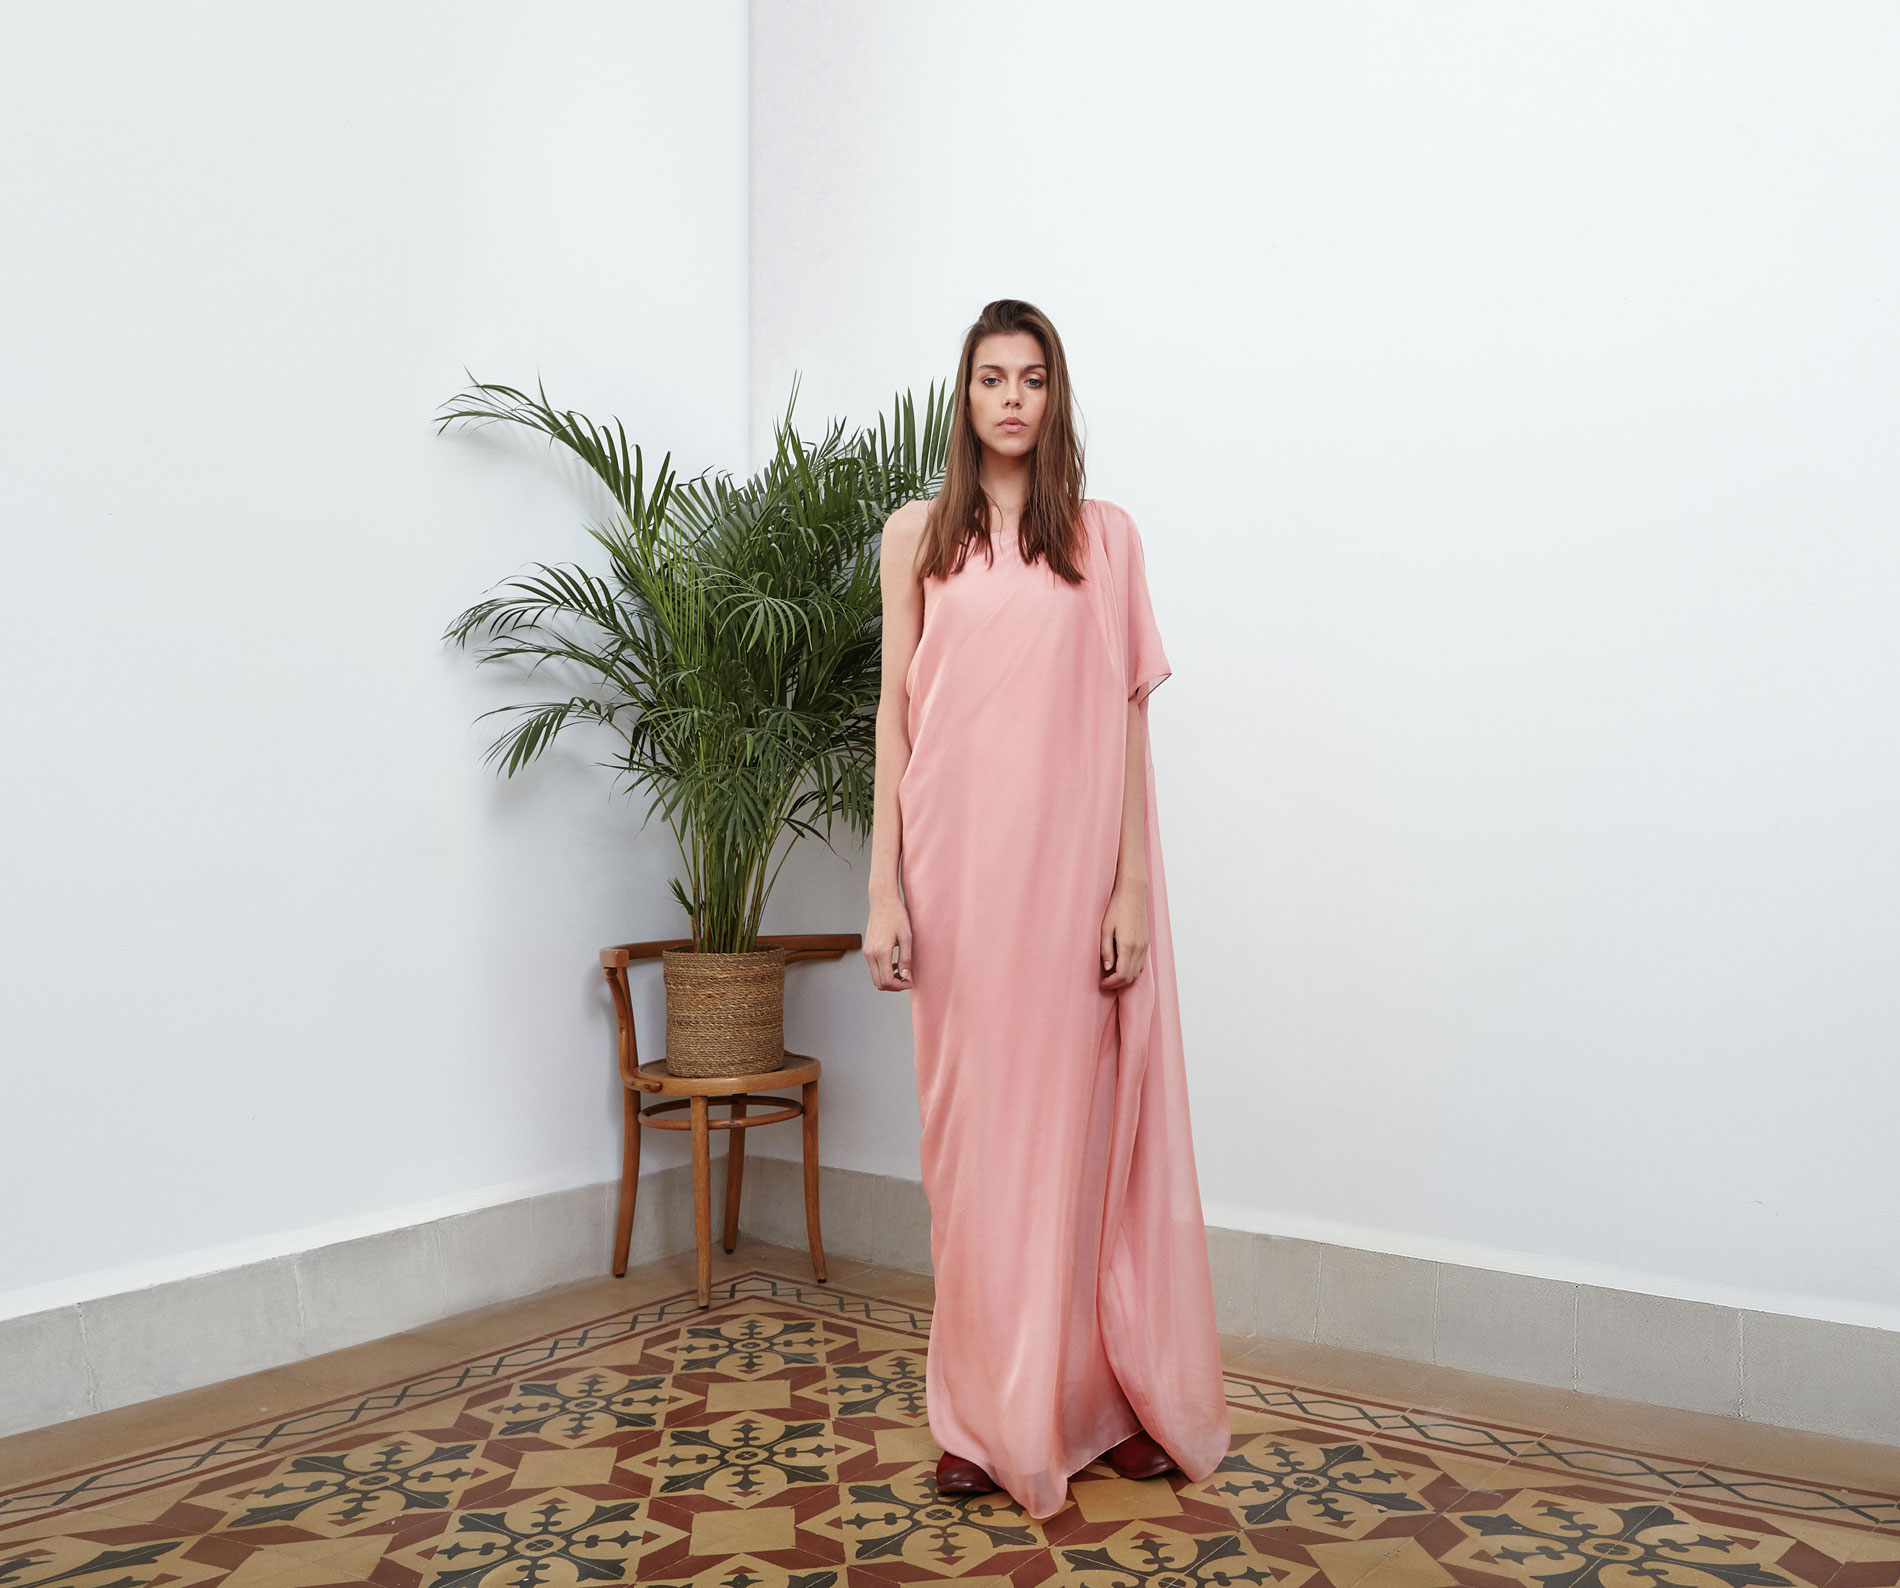 Lara Khoury | Eudemonia Spring 2019 | look 11-1 | One-Sleeve Pink Muslin Drape Dress.jpg